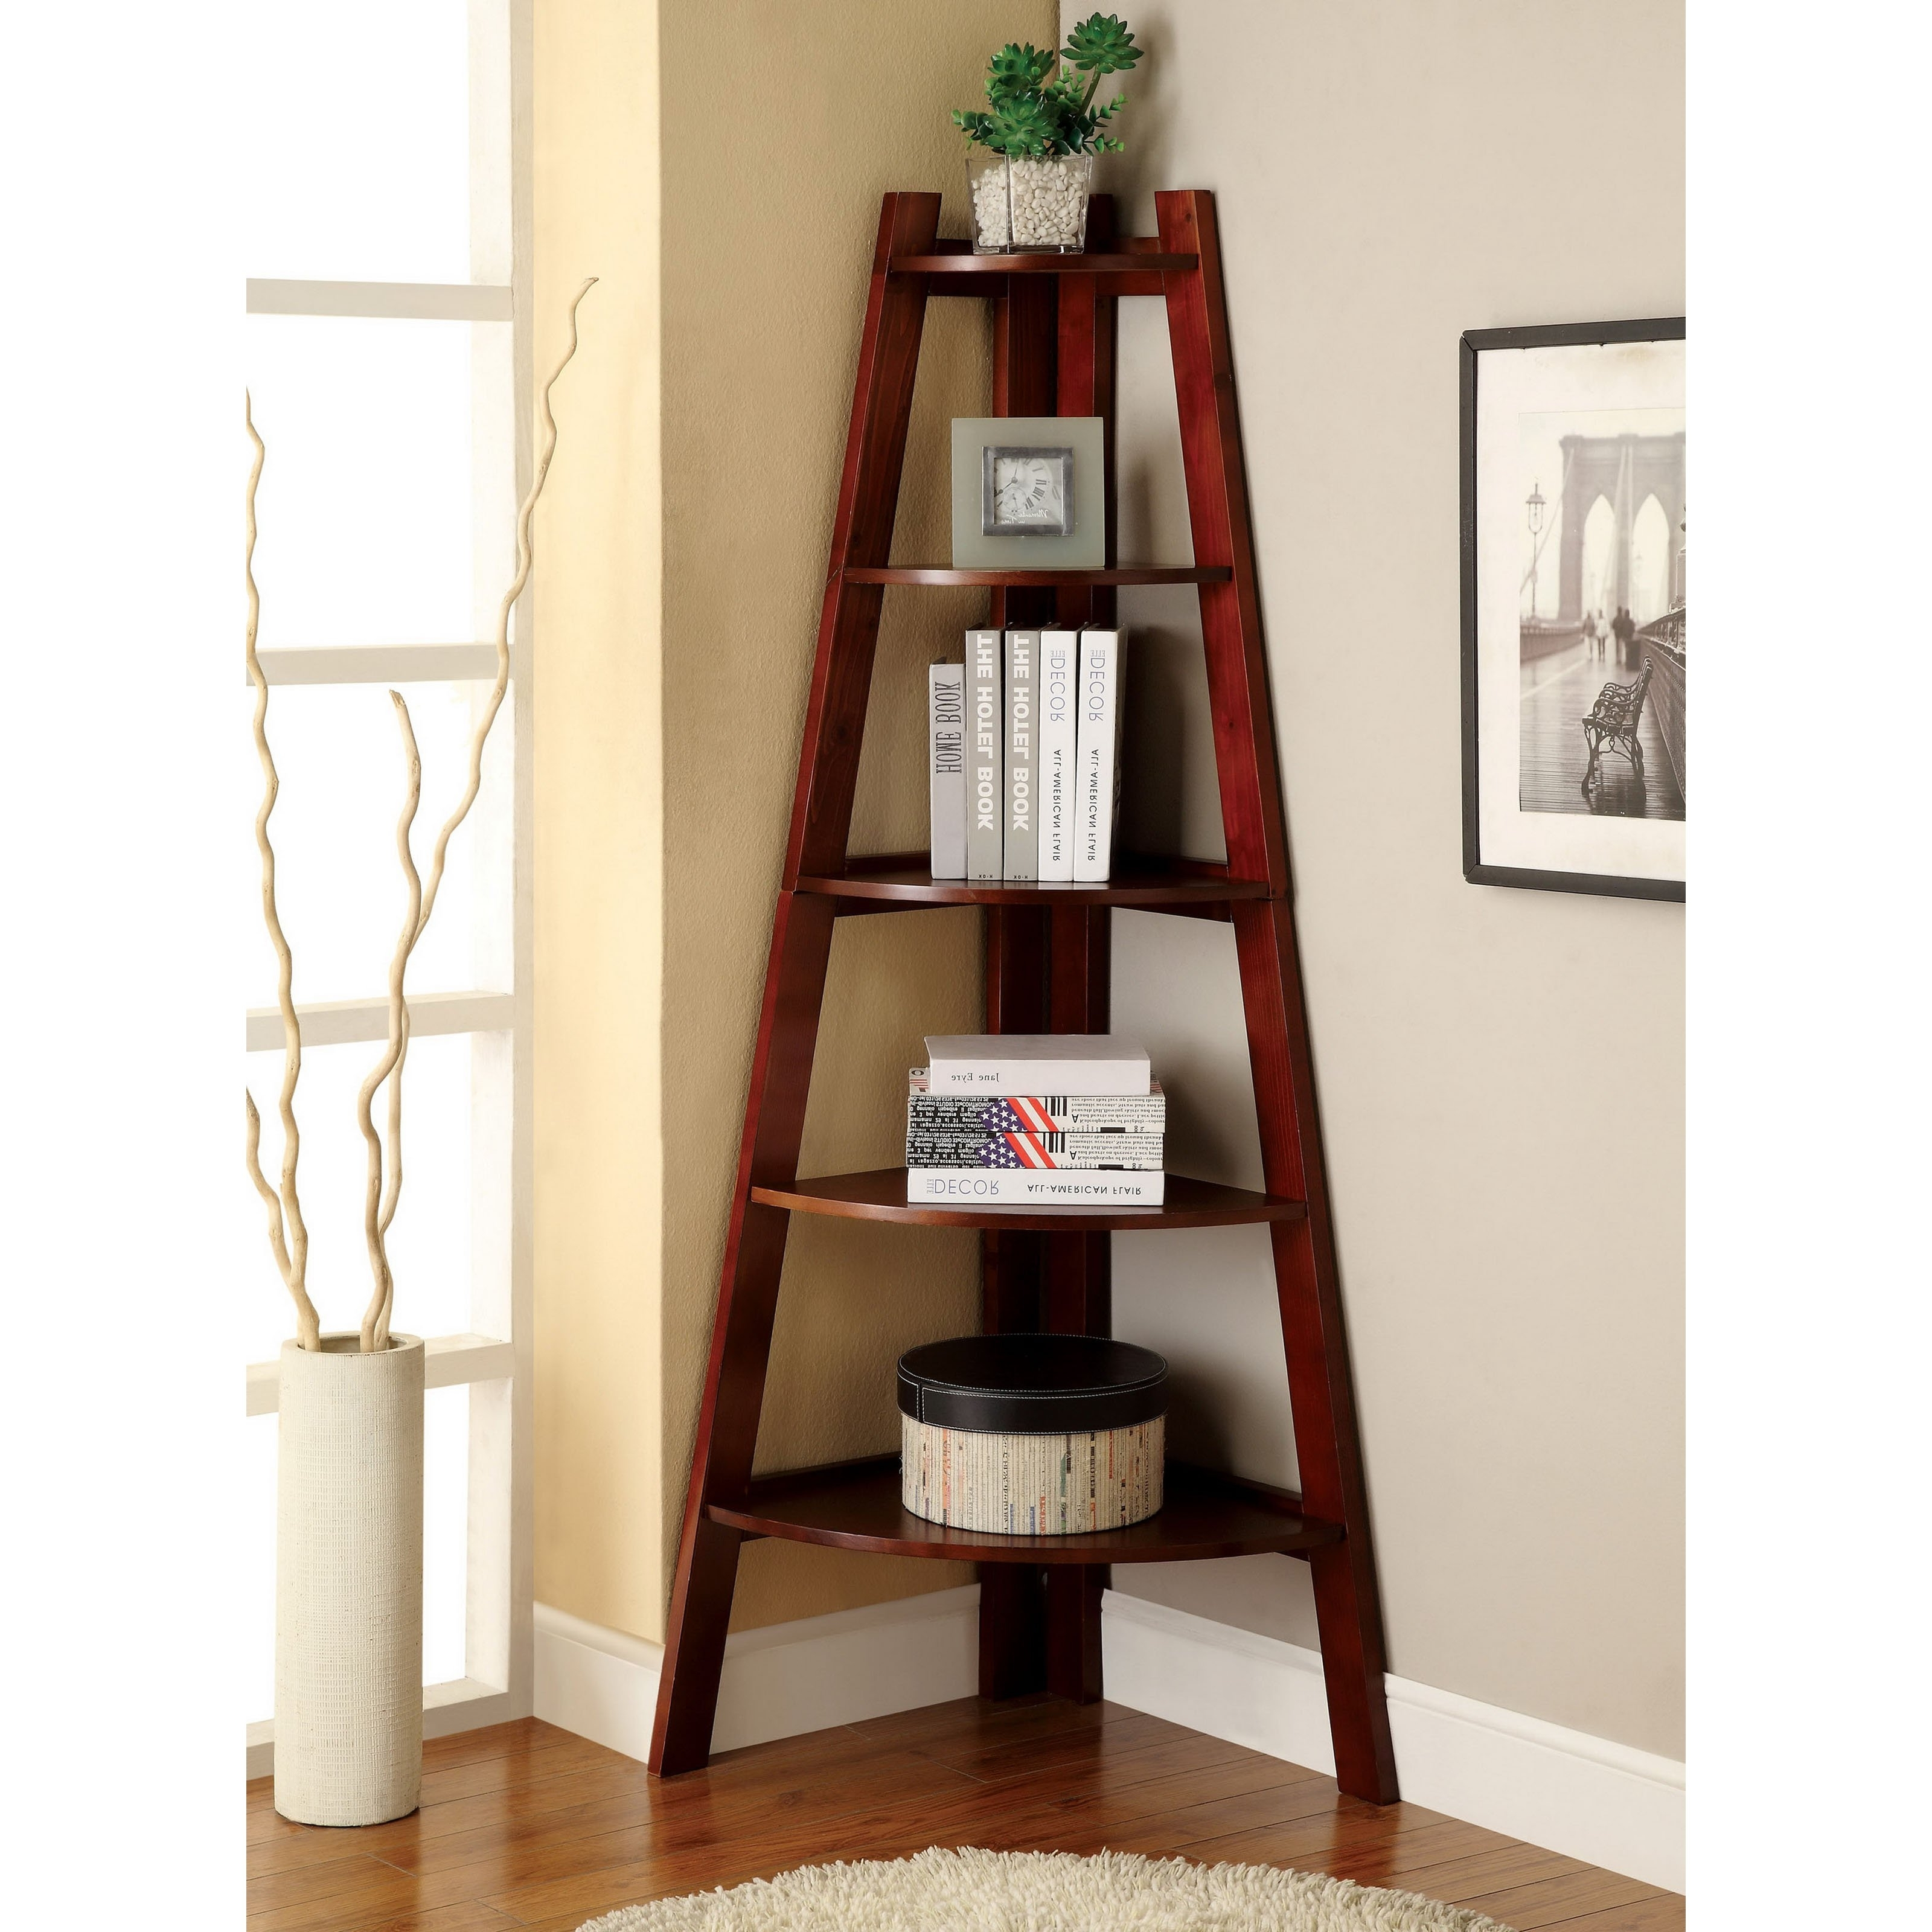 Corner Bookcases In Widely Used Corner Bookcases & Bookshelves (View 8 of 15)